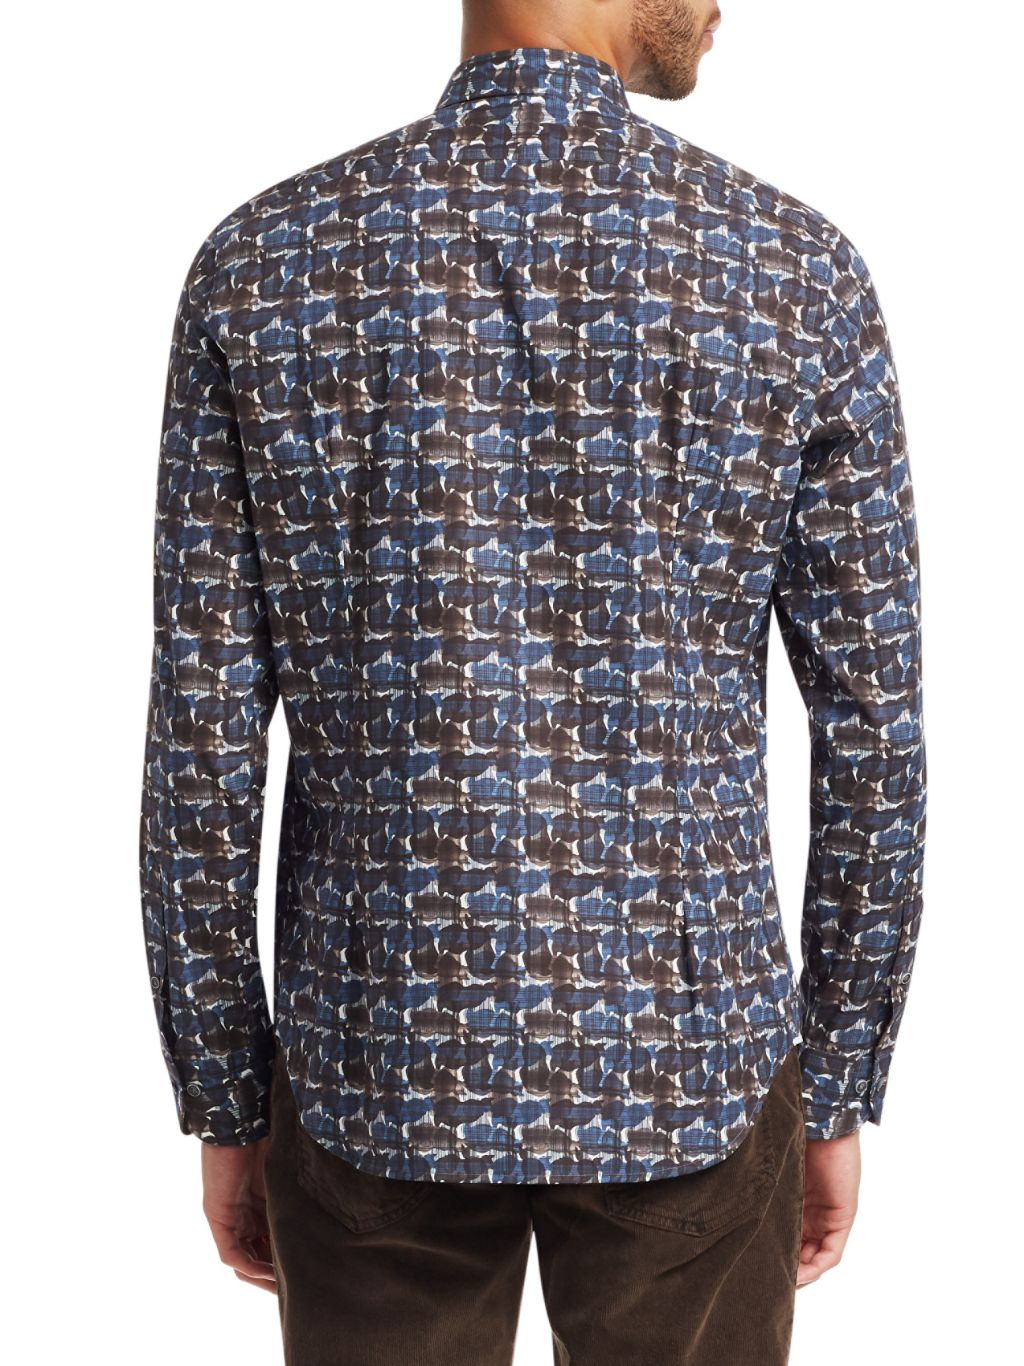 Saks Fifth Avenue COLLECTION Abstract Print Dress Shirt